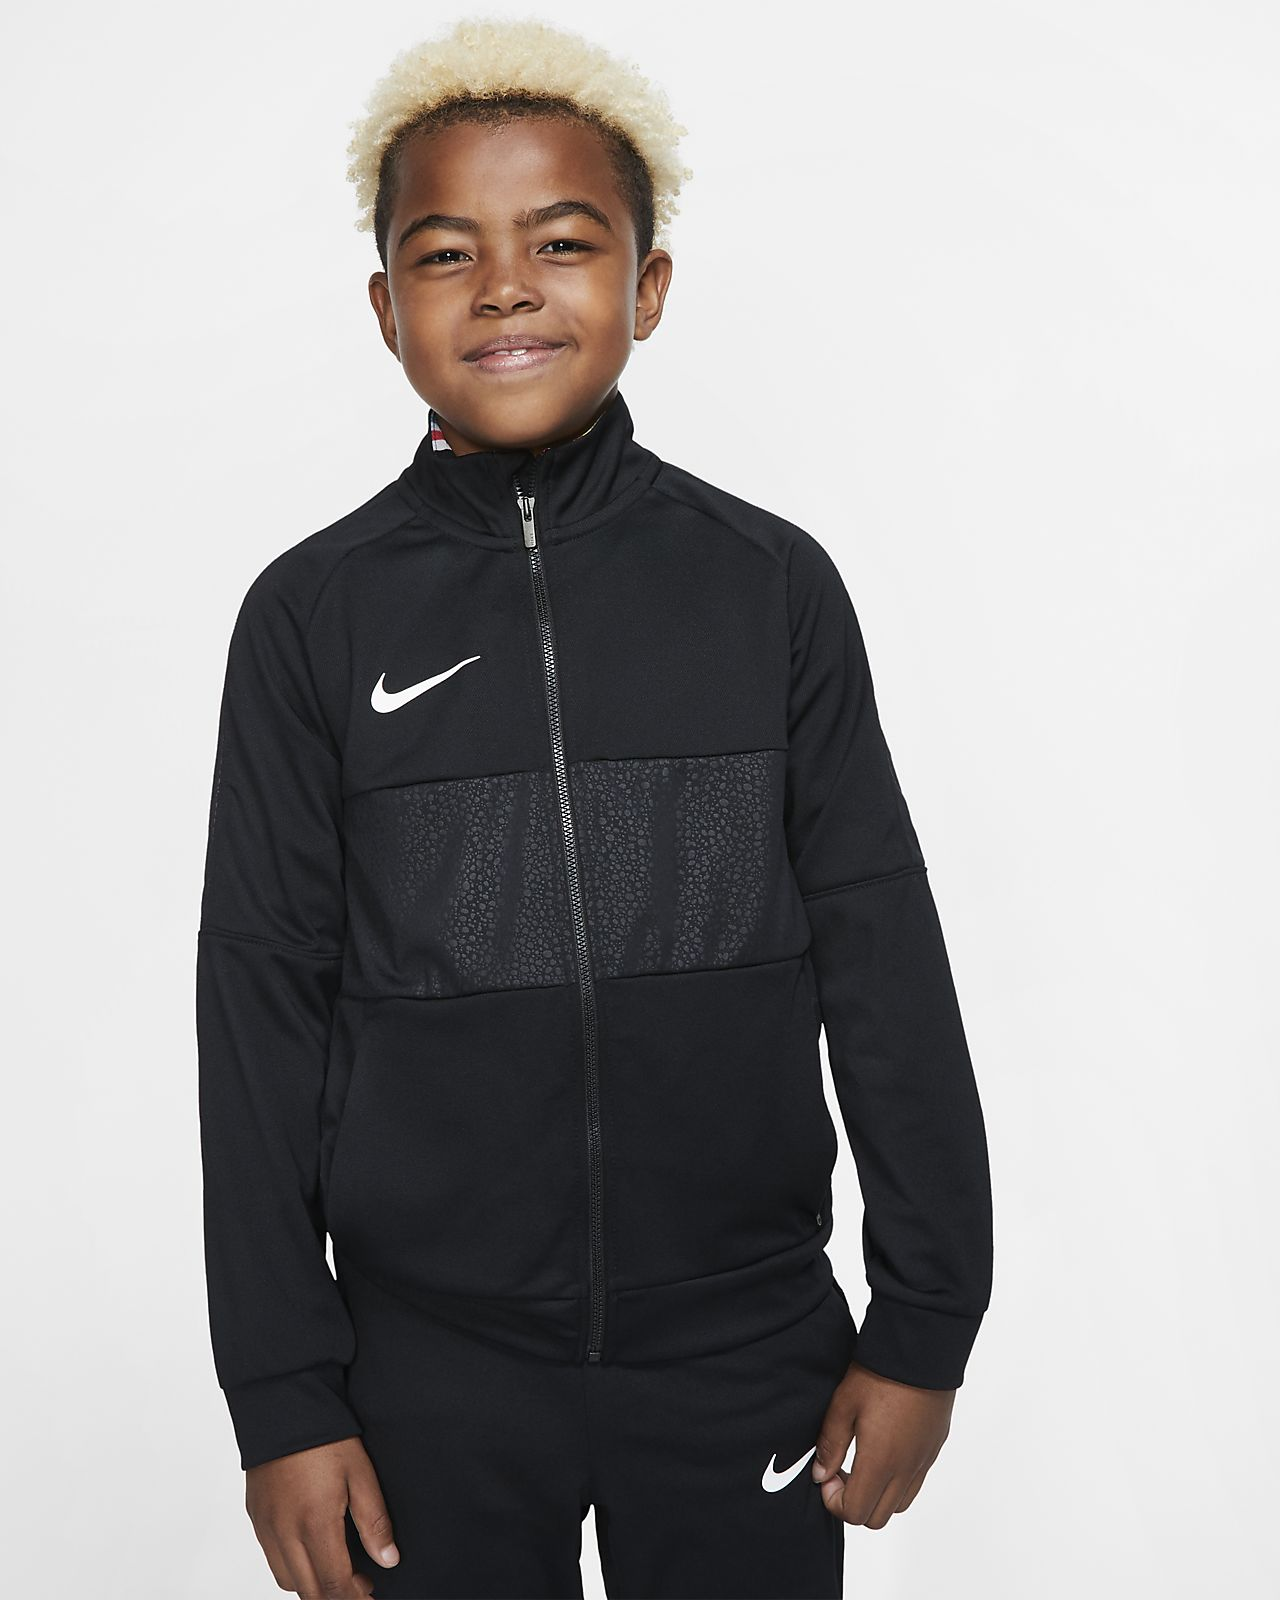 Nike Dri-FIT Mercurial Older Kids' Football Jacket